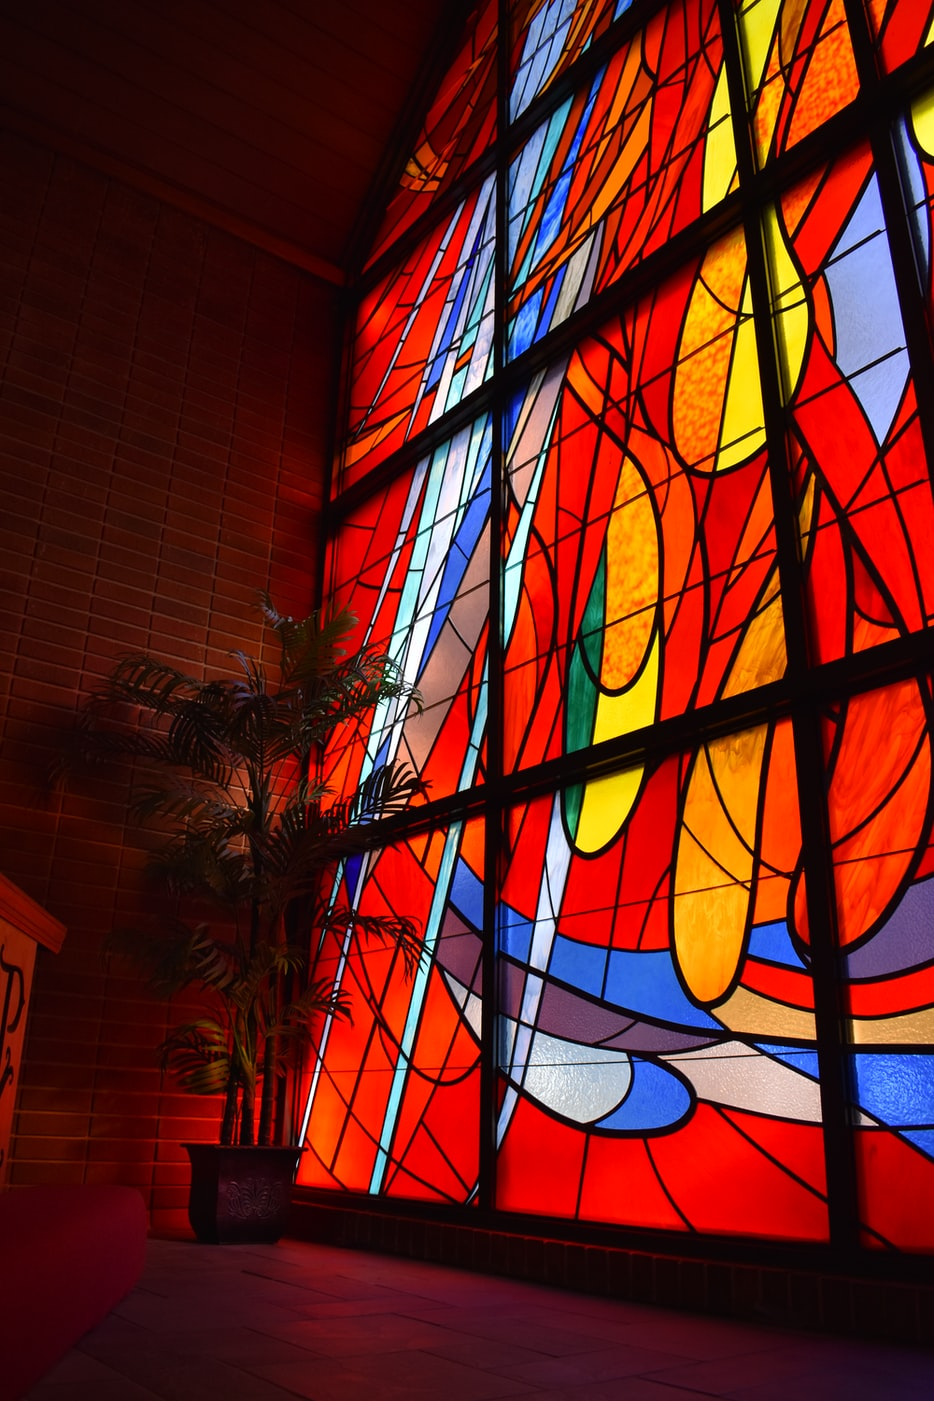 stained glass window in a Lutheran church in Augusta, GA